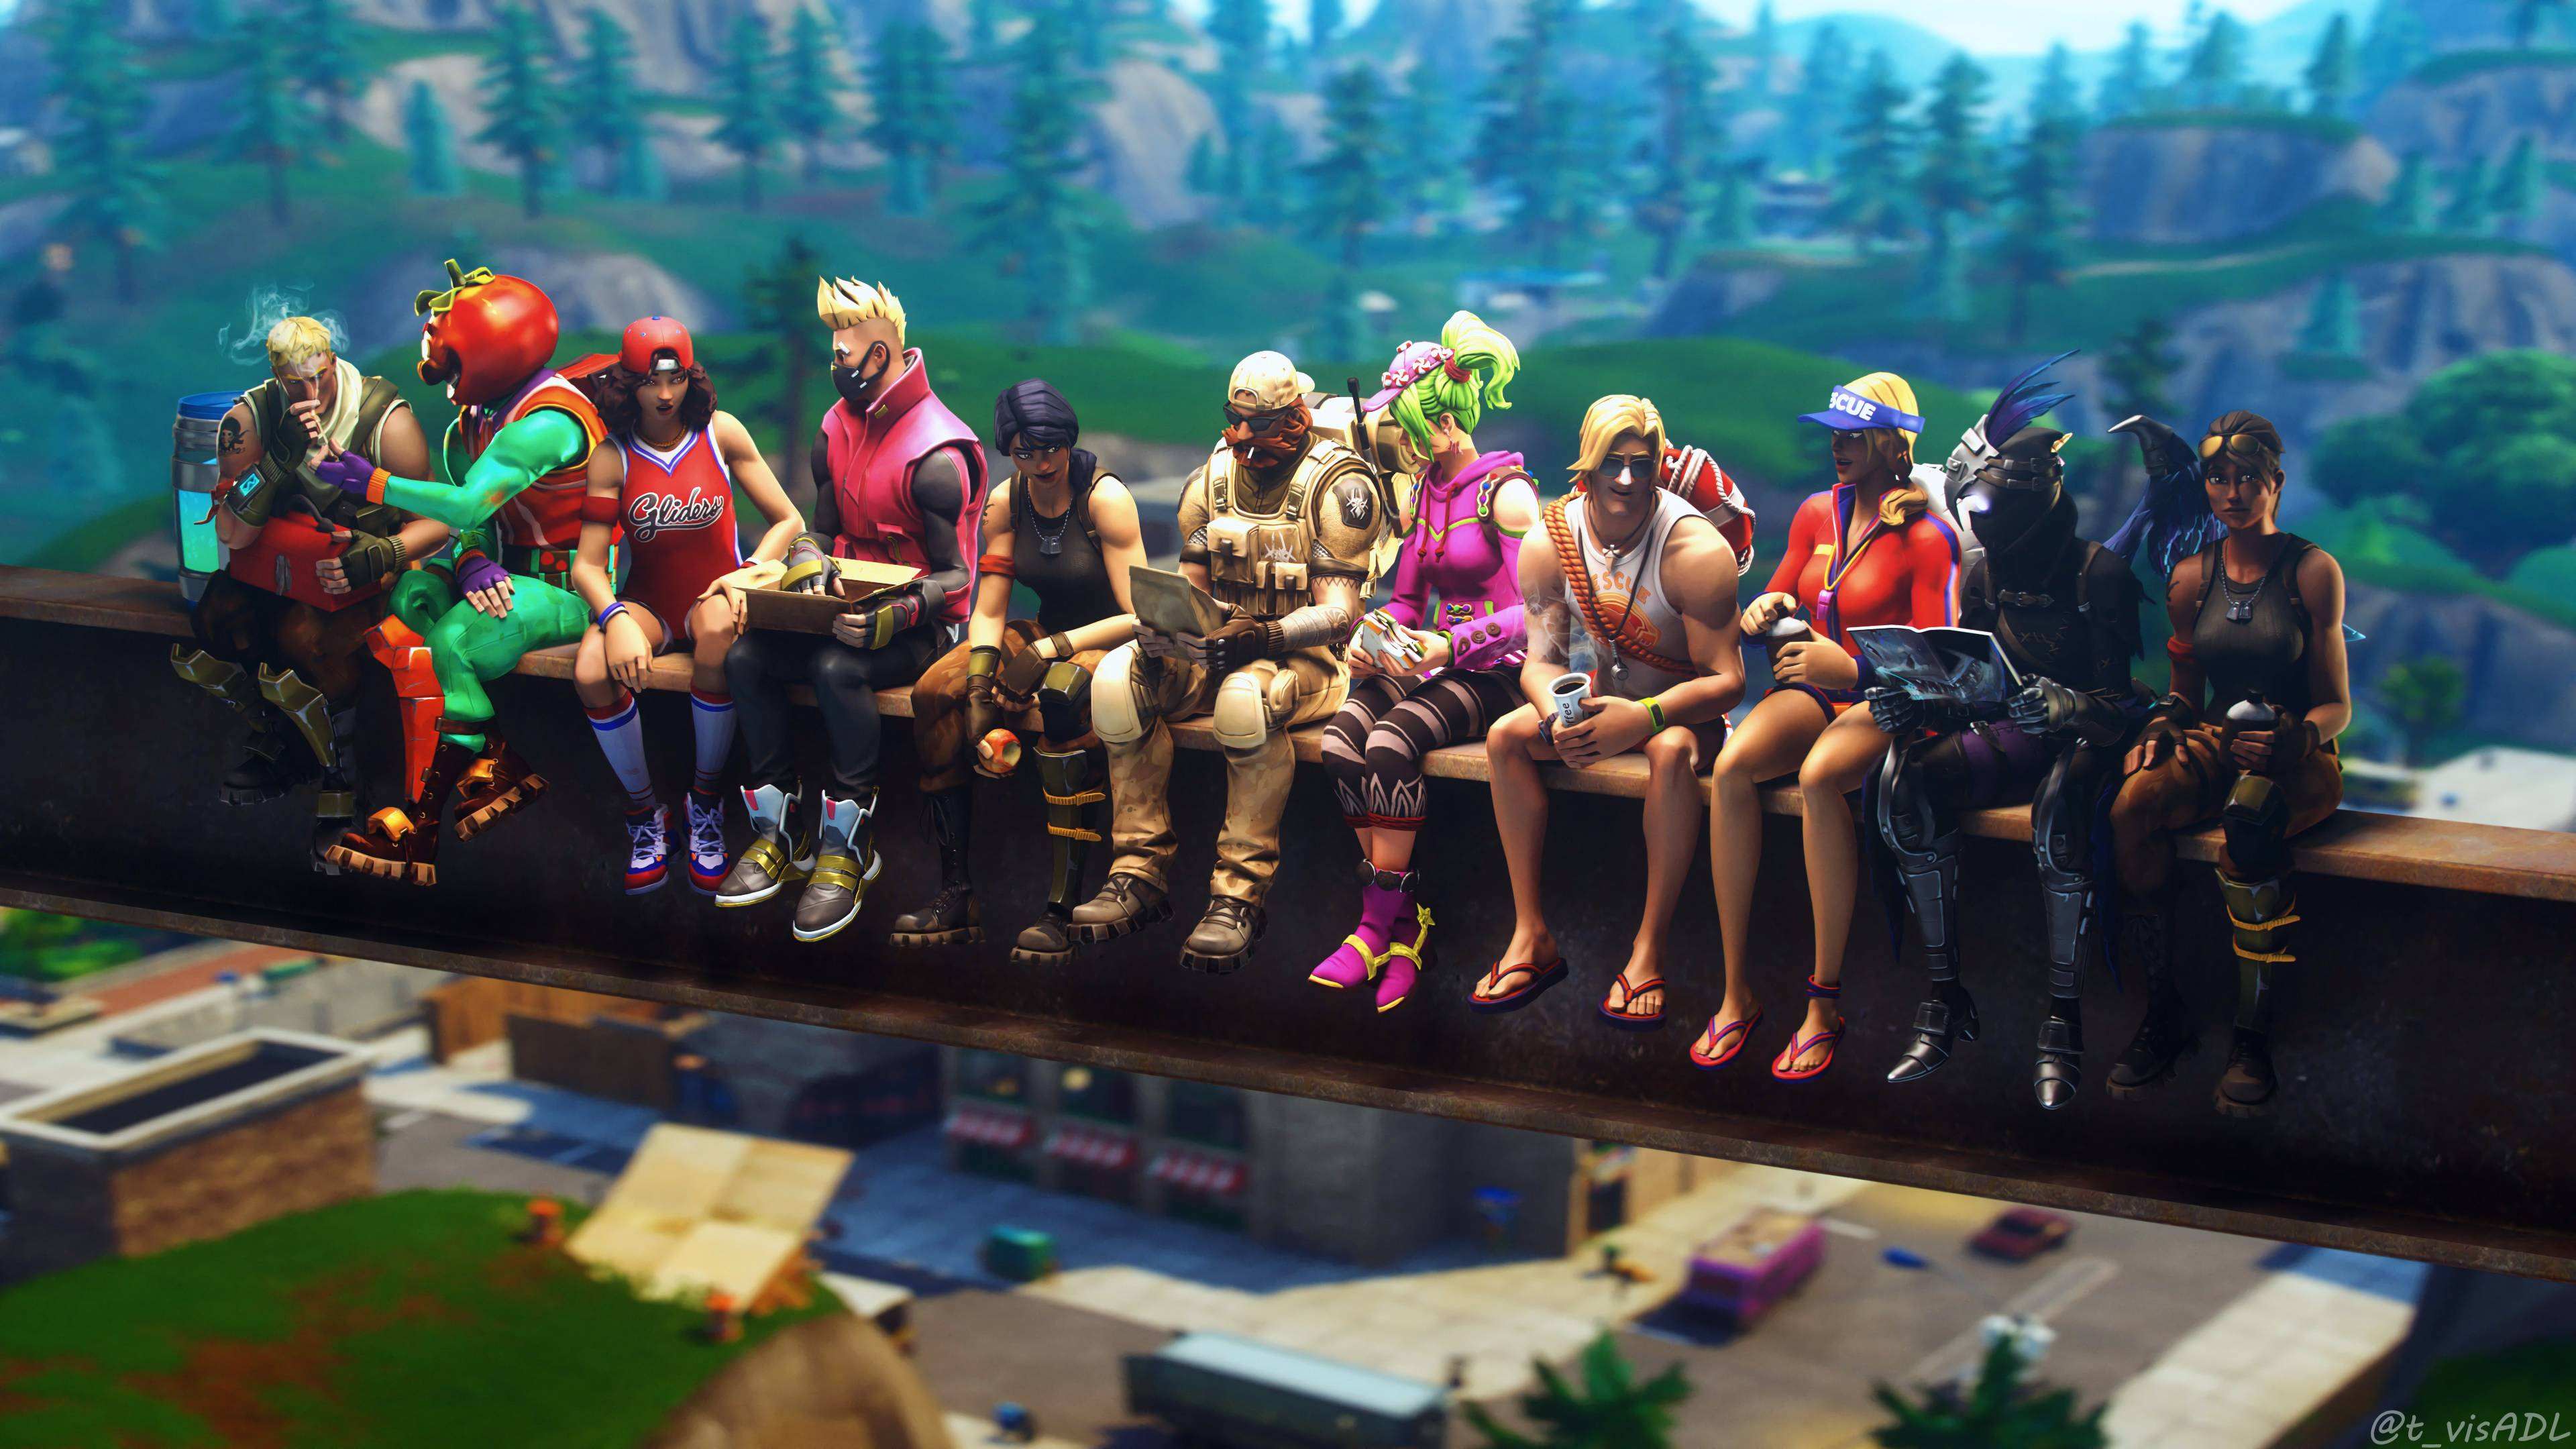 Drift 4K 8K HD Fortnite Battle Royale Wallpaper